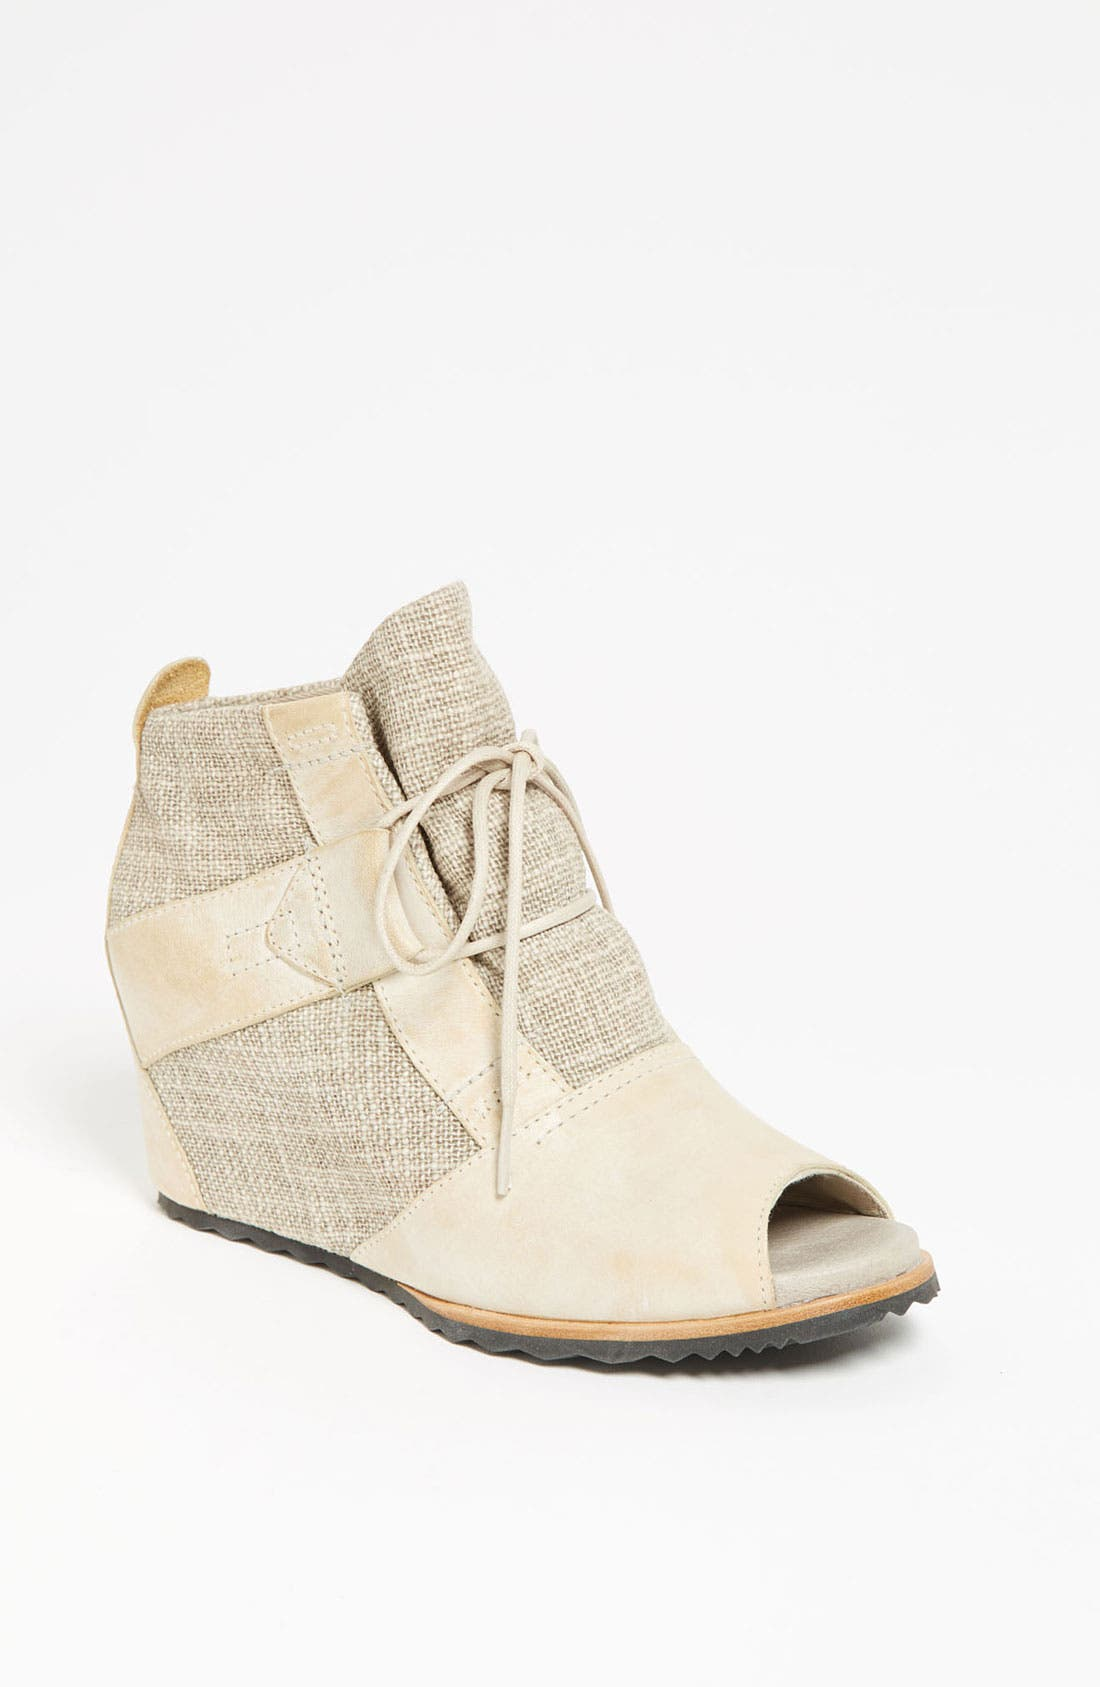 Main Image - Sorel 'Lake Wedge' Bootie